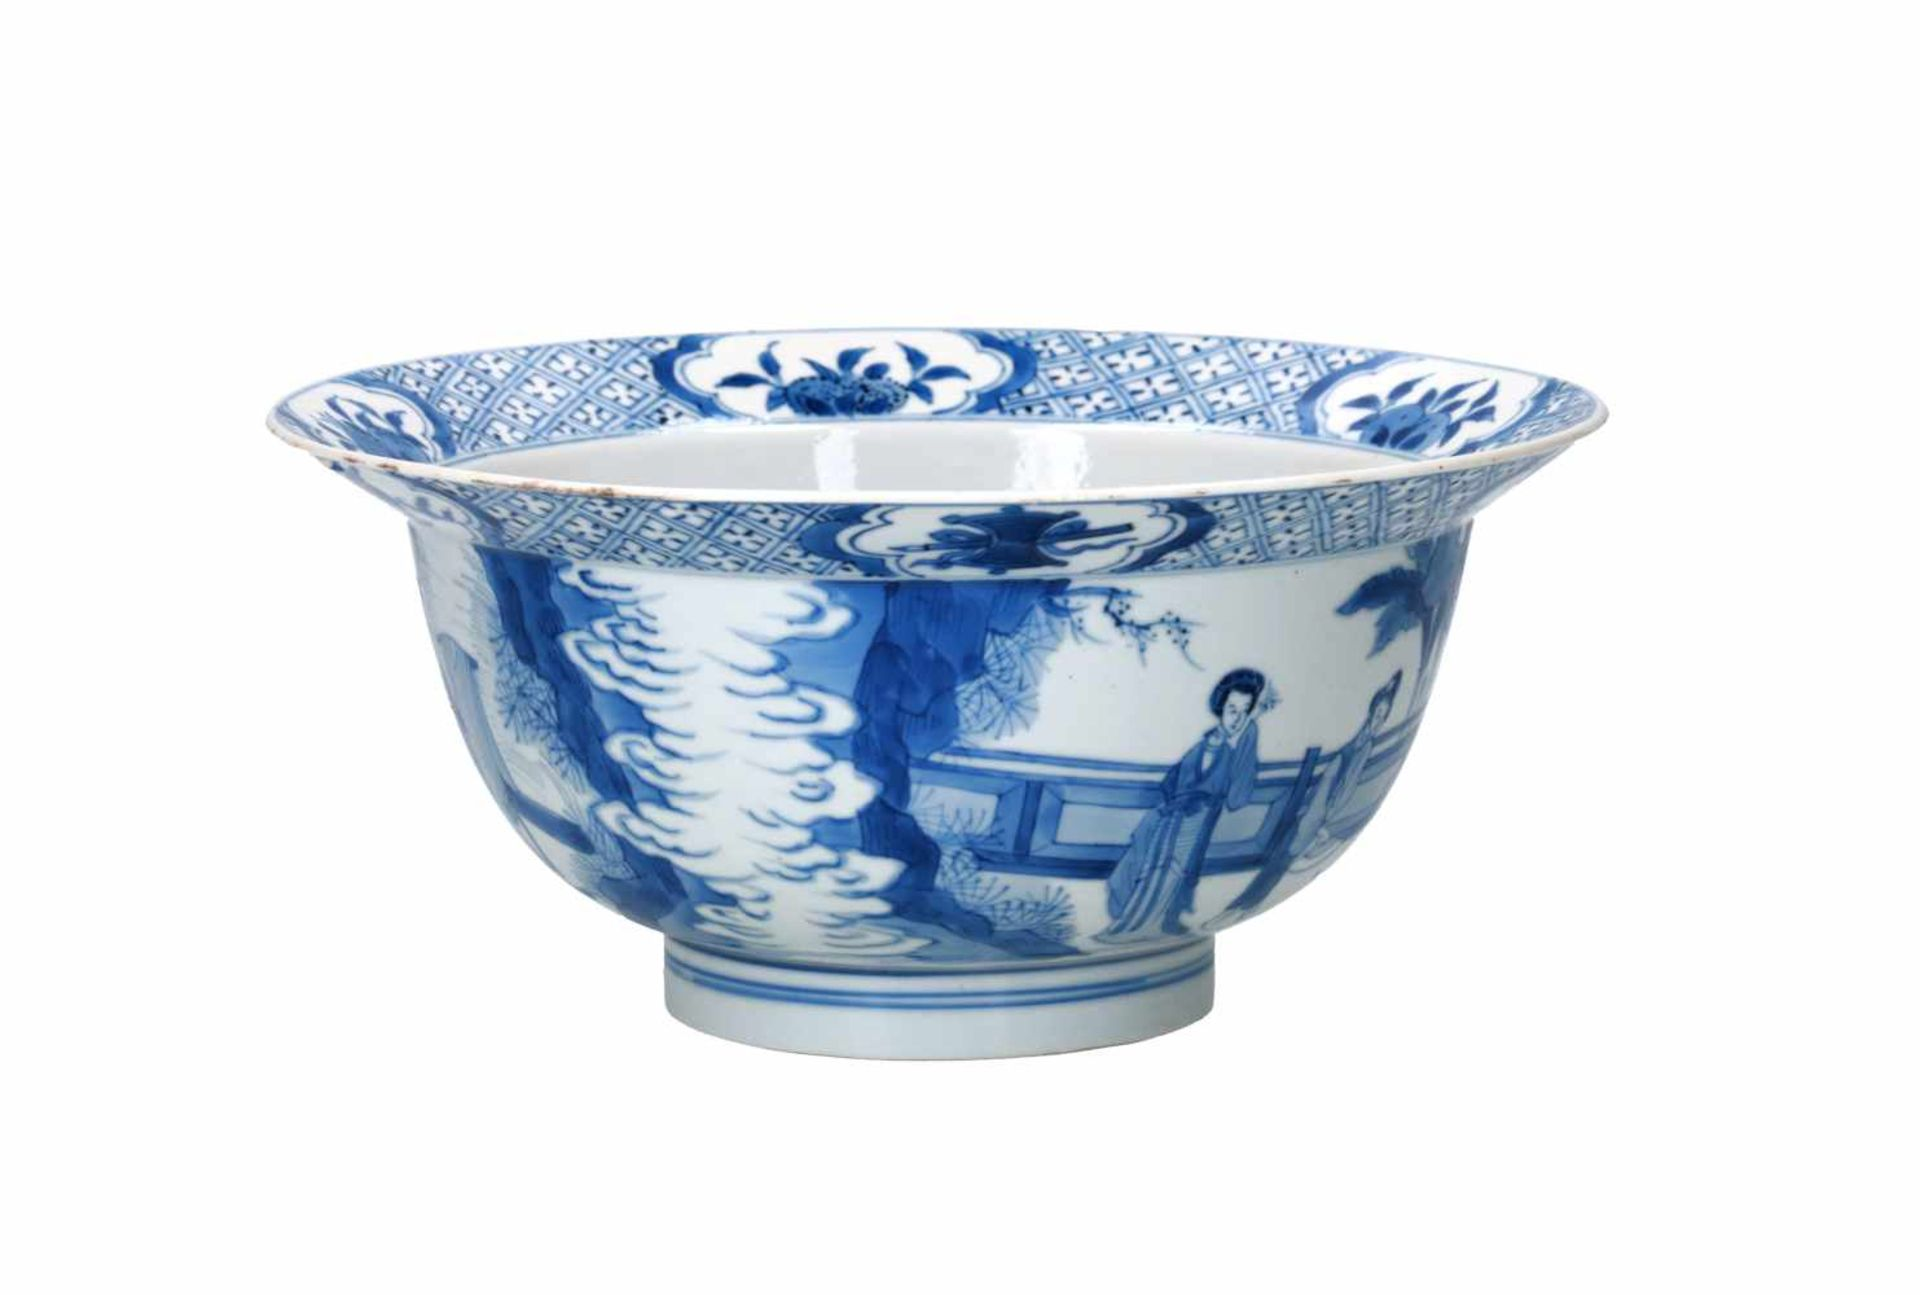 A blue and white porcelain 'klapmuts' bowl, decorated with scenes of the Romance of the Western - Bild 4 aus 6